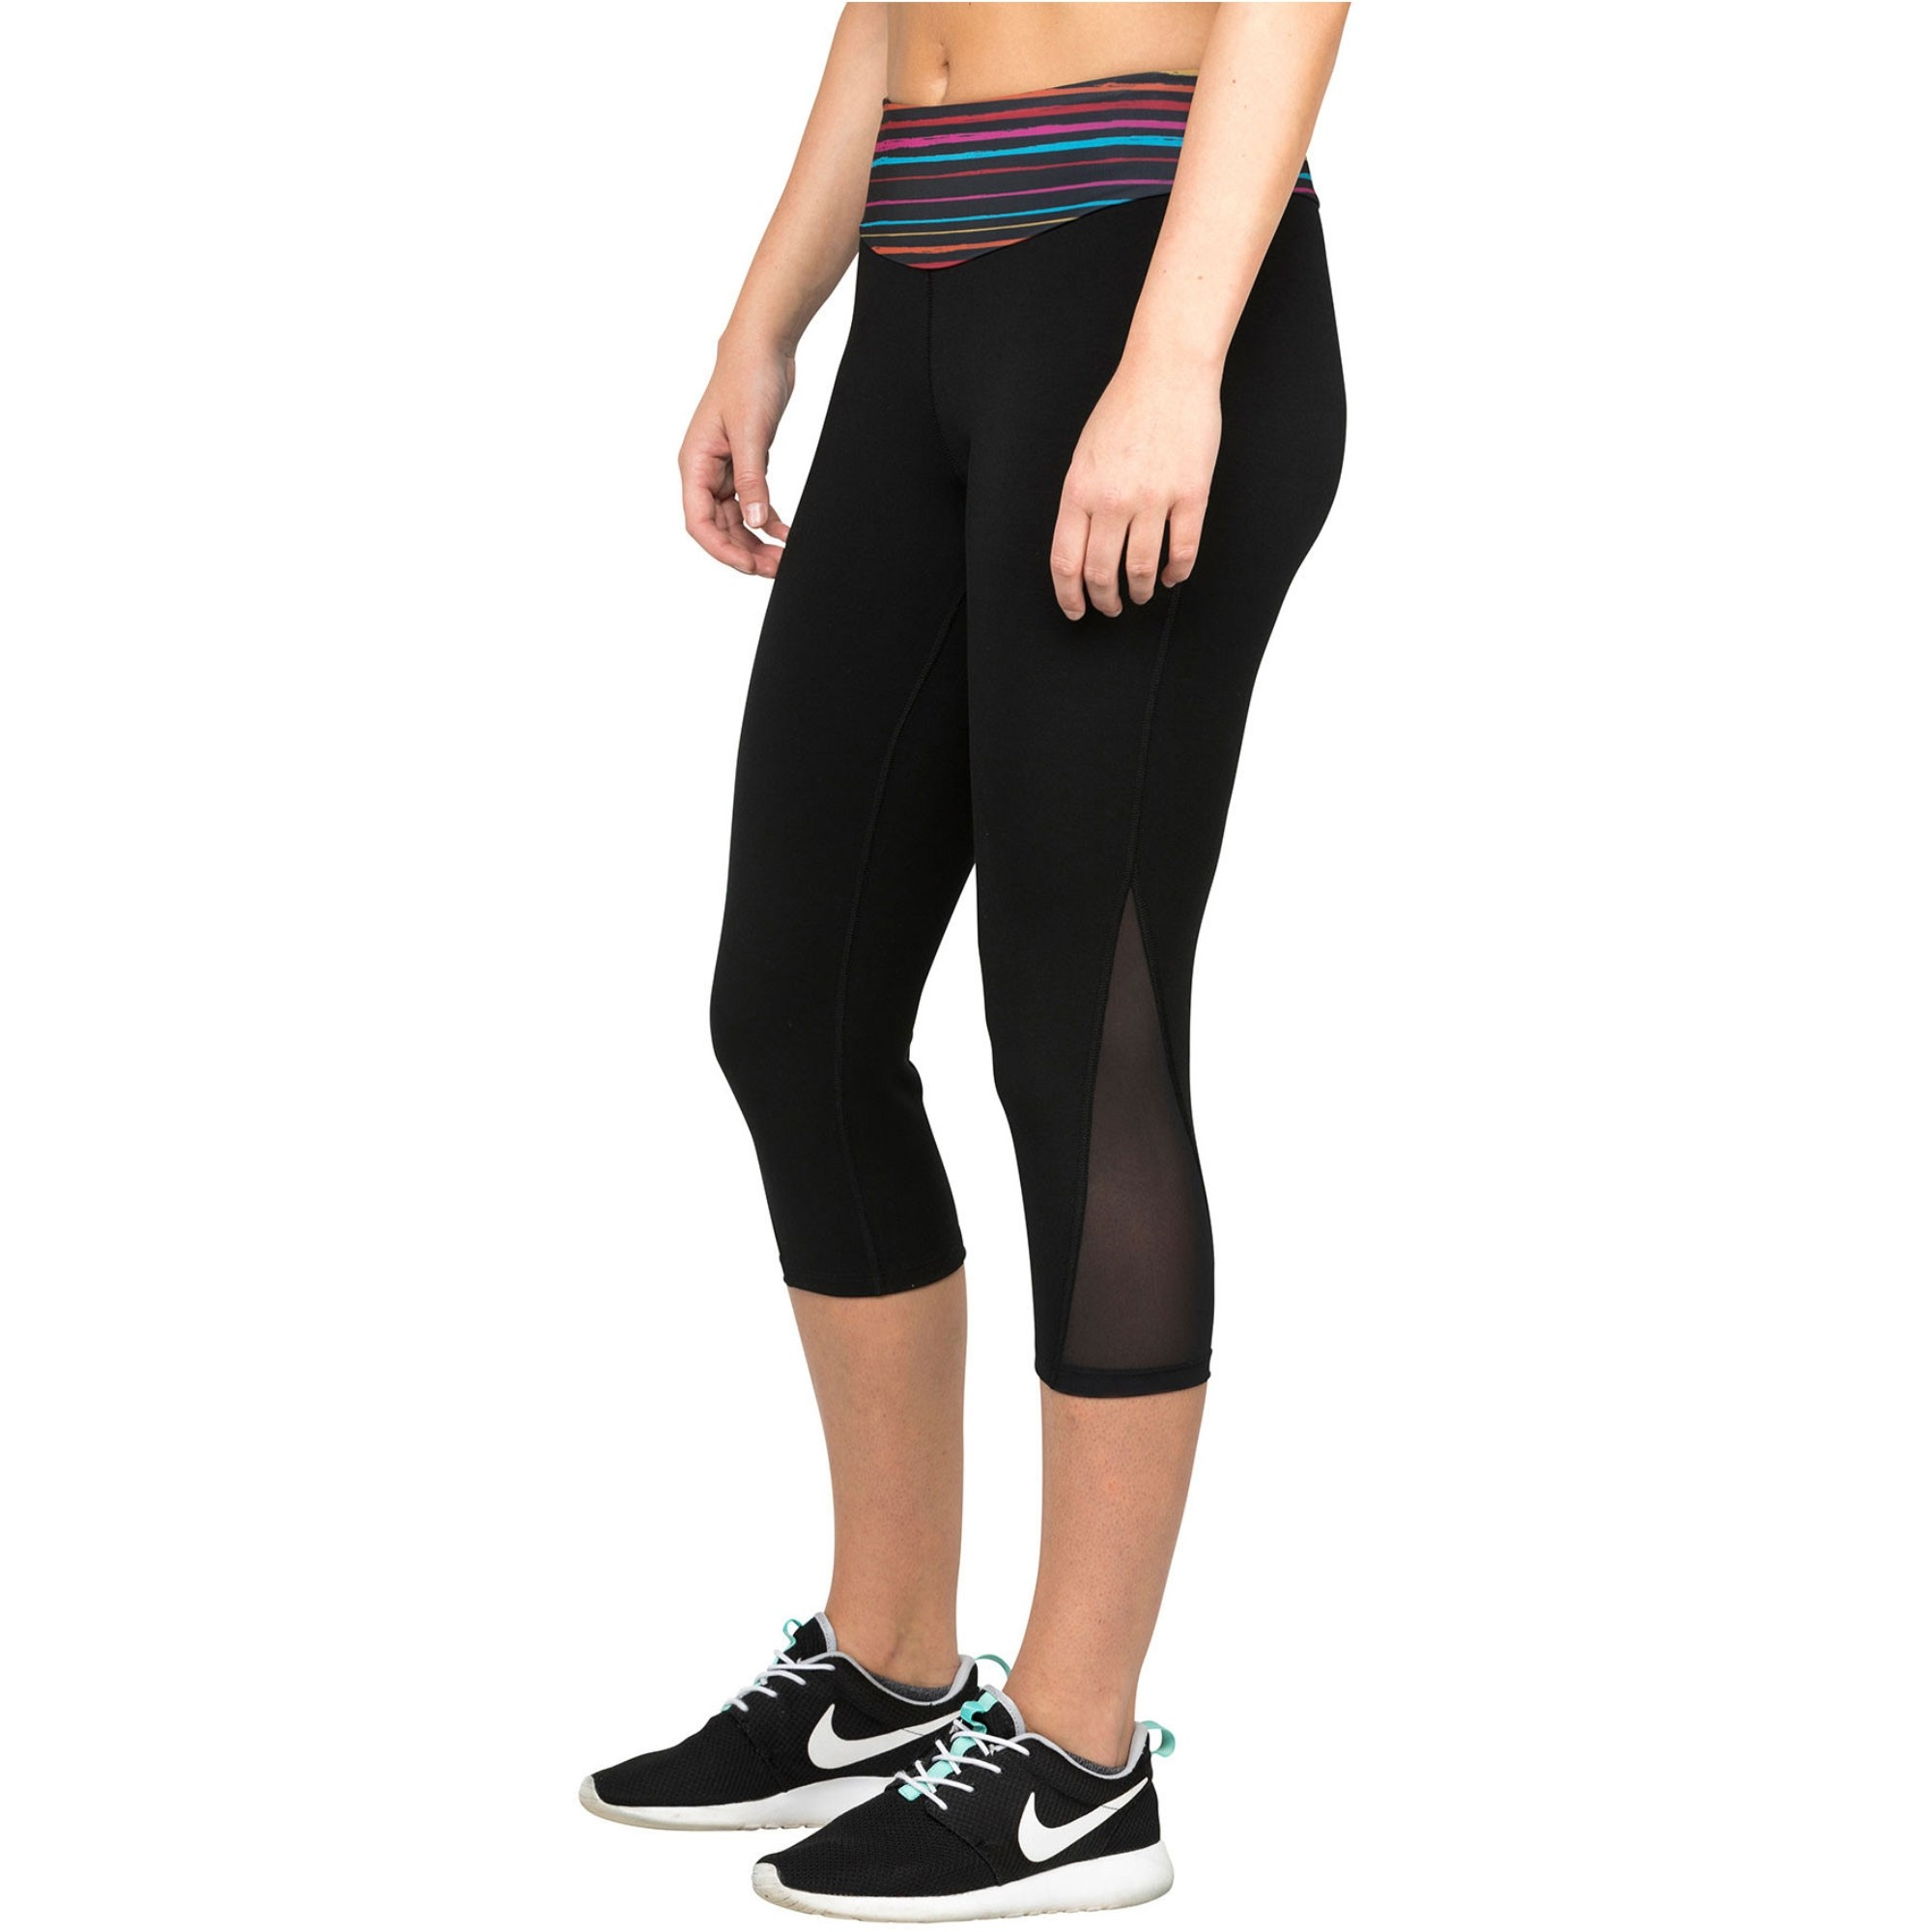 Chillaz Women's Sundergrund 3/4 Pants - Black - Side